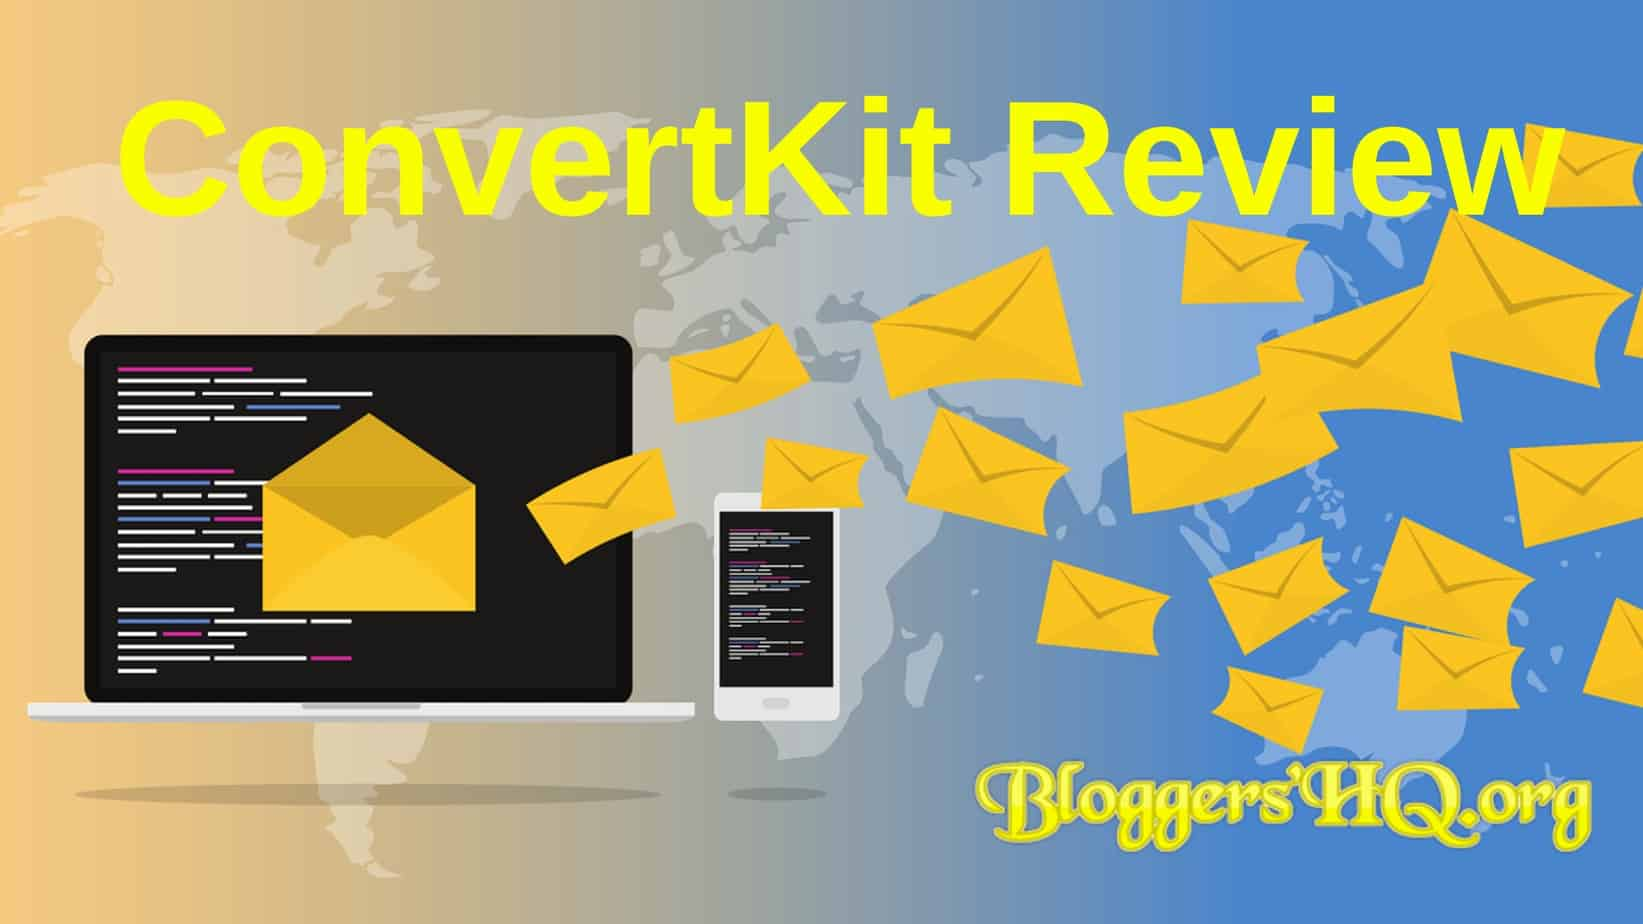 Buy Convertkit Email Marketing Online Voucher Code Printable 30 Off